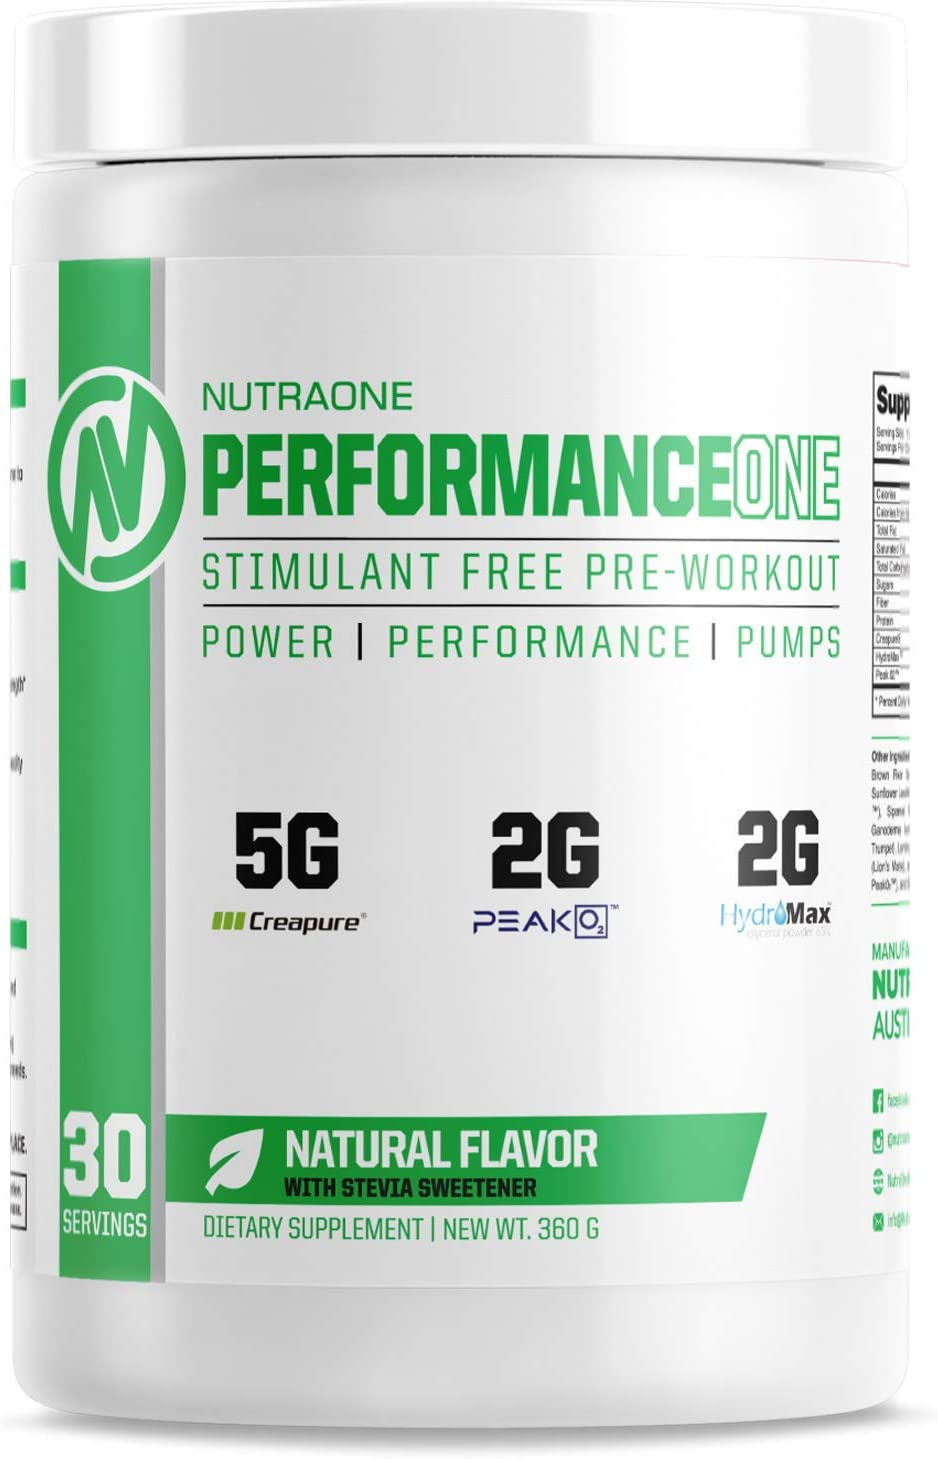 PerformanceOne Stimulant Free Preworkout Powder